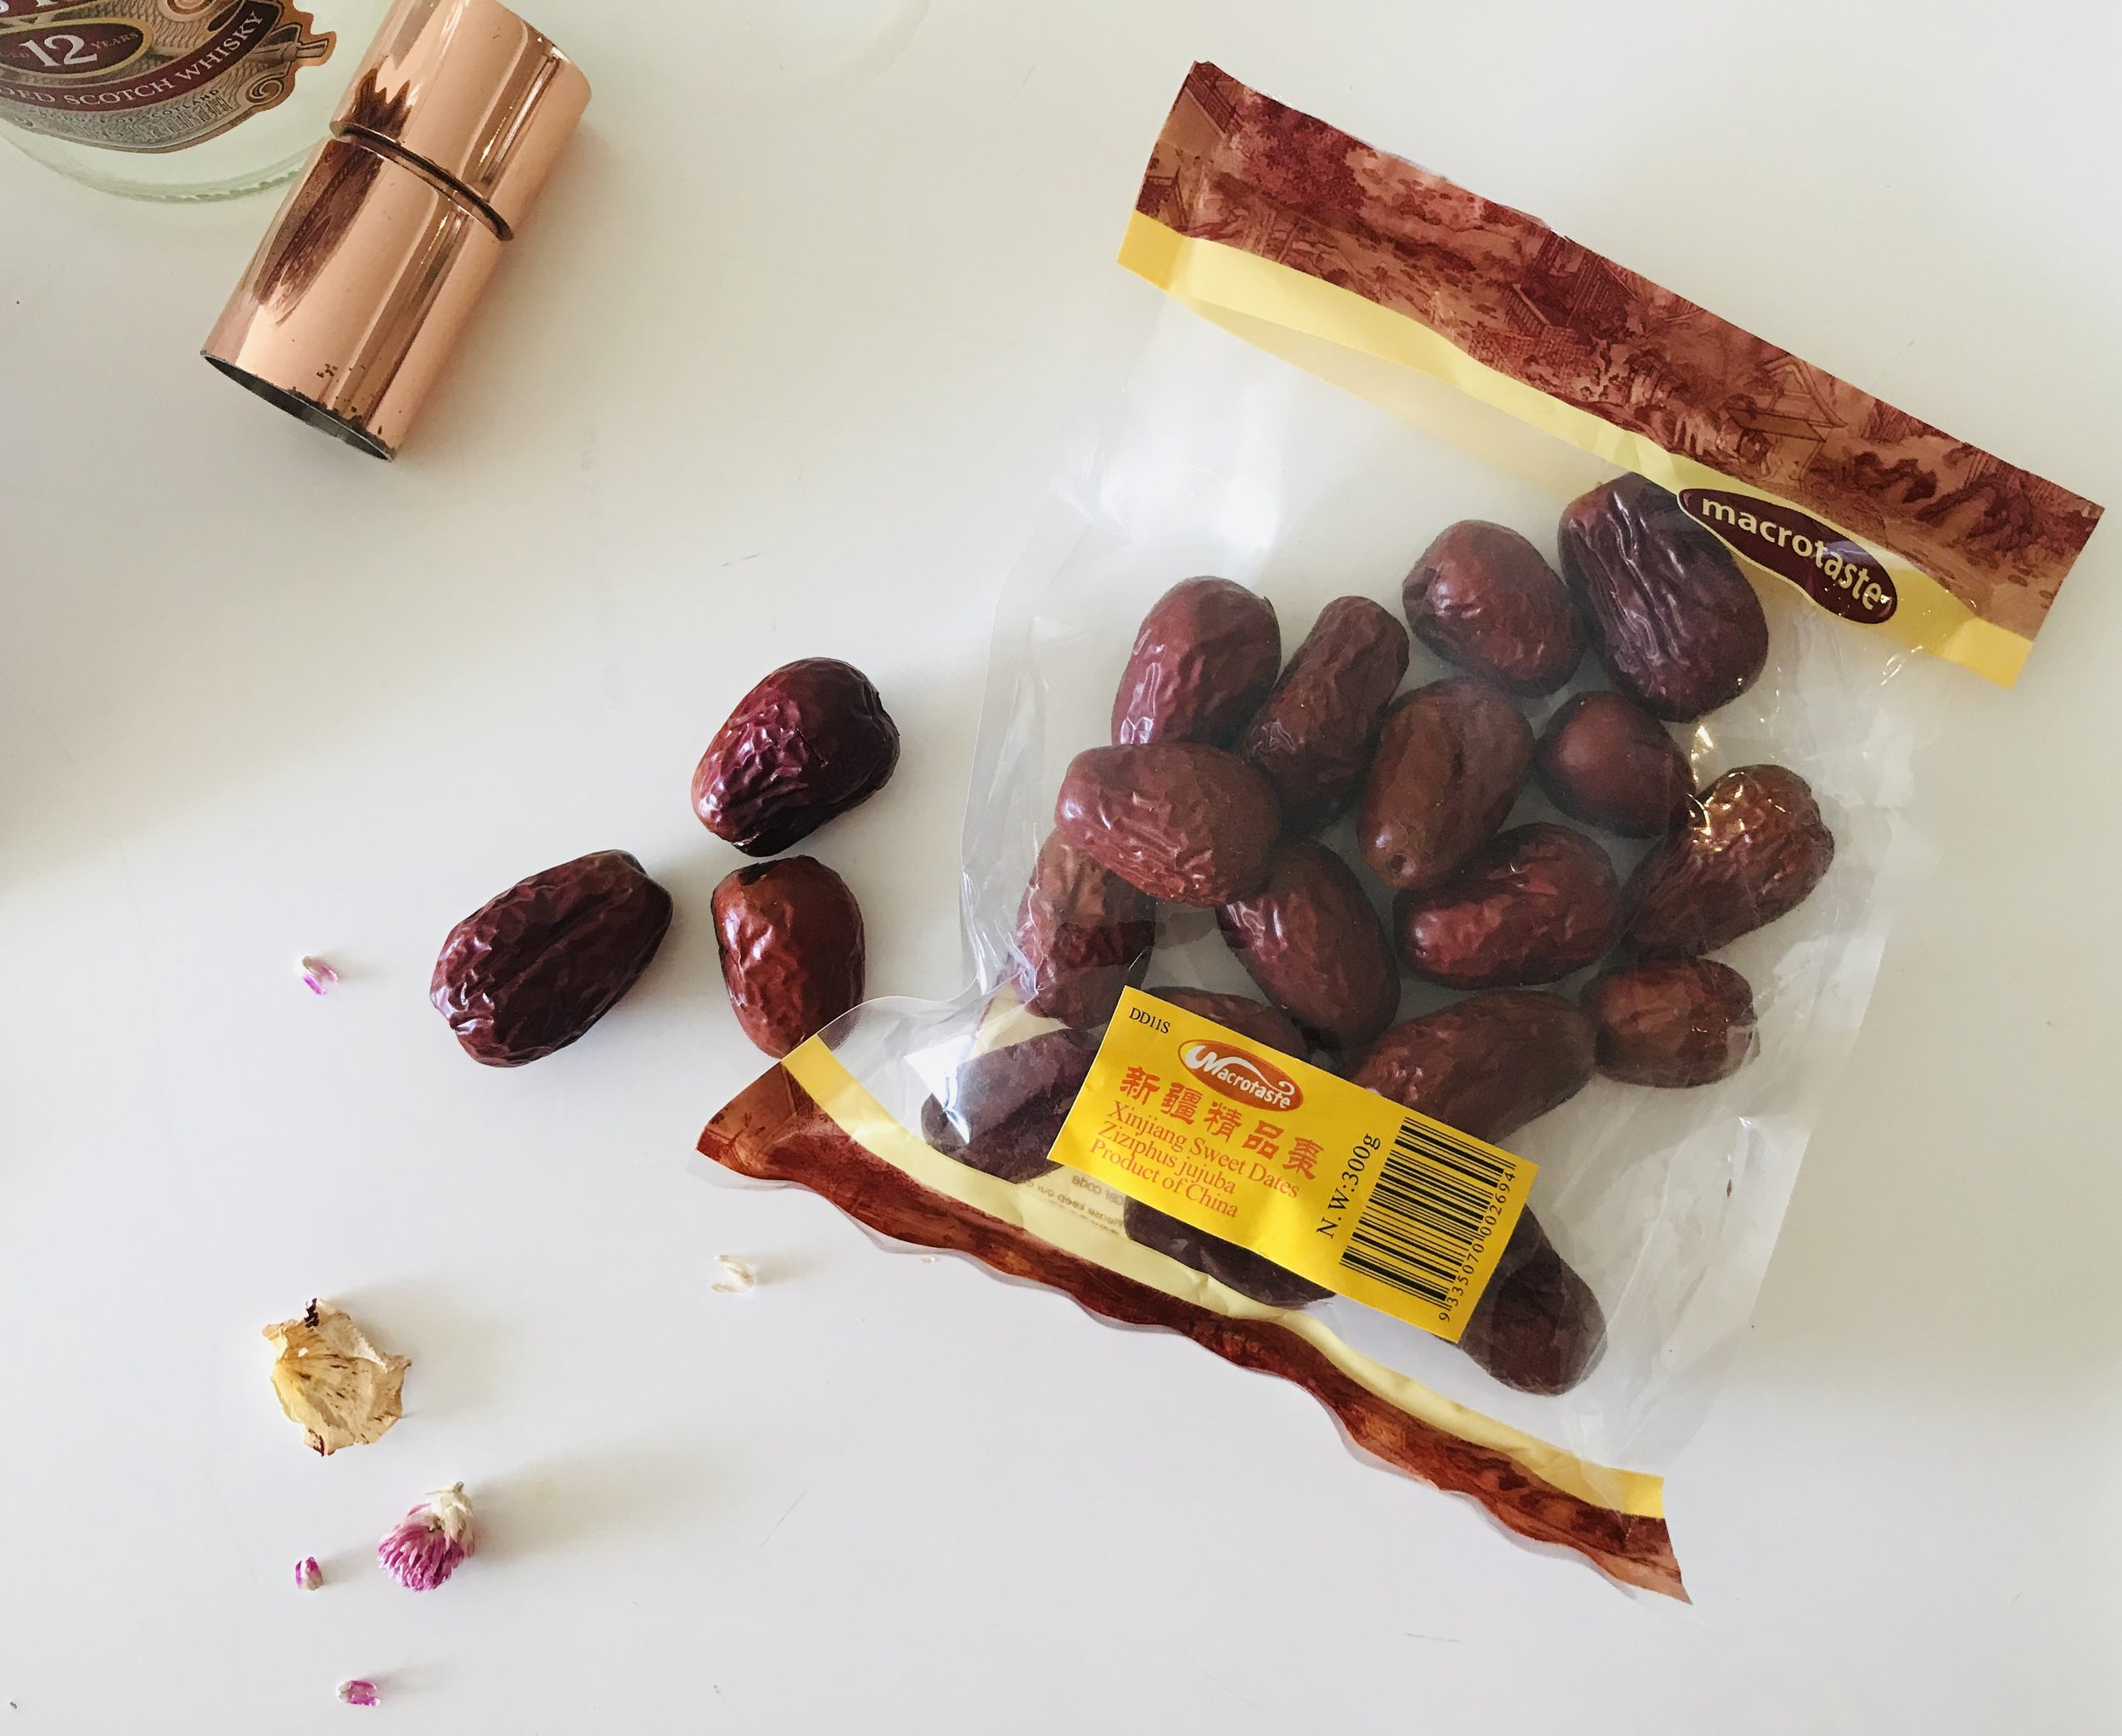 Red dates from a packet